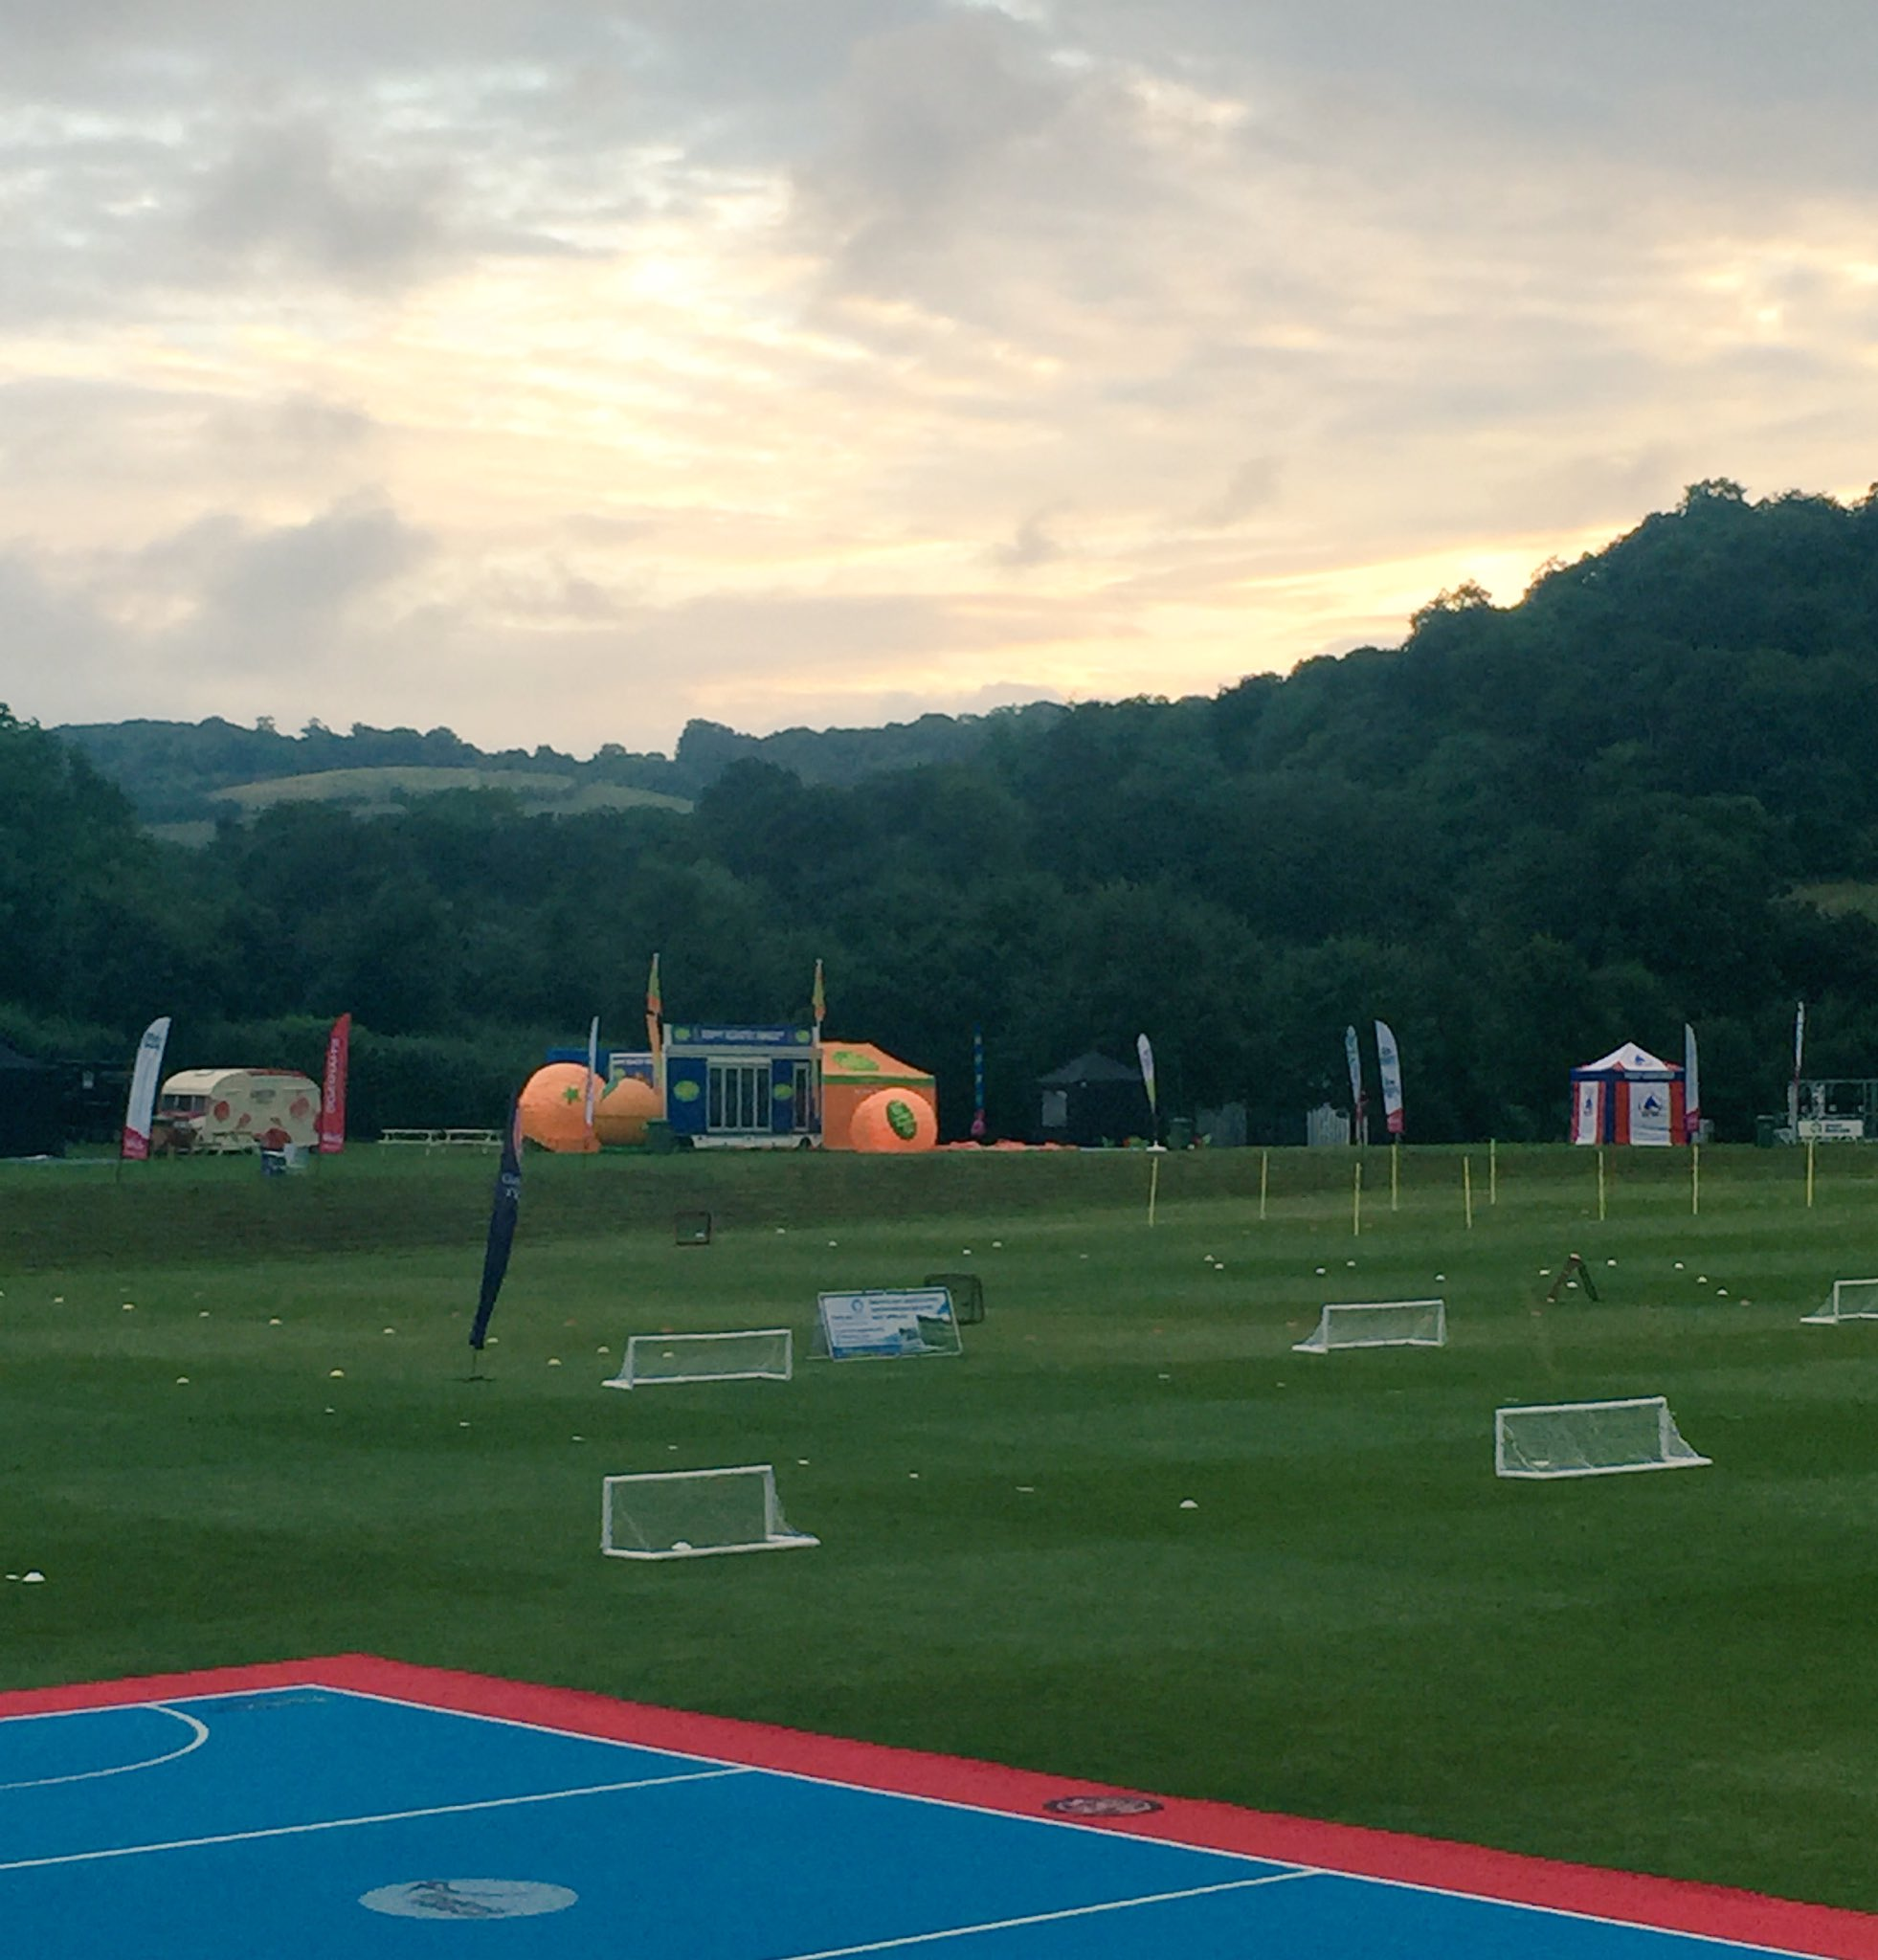 RT @SportFest2016: Good morning!! Are you on your way to @WormsleyCricket?? We cannot wait to see you! Let's do this! #sunrise #sport https…